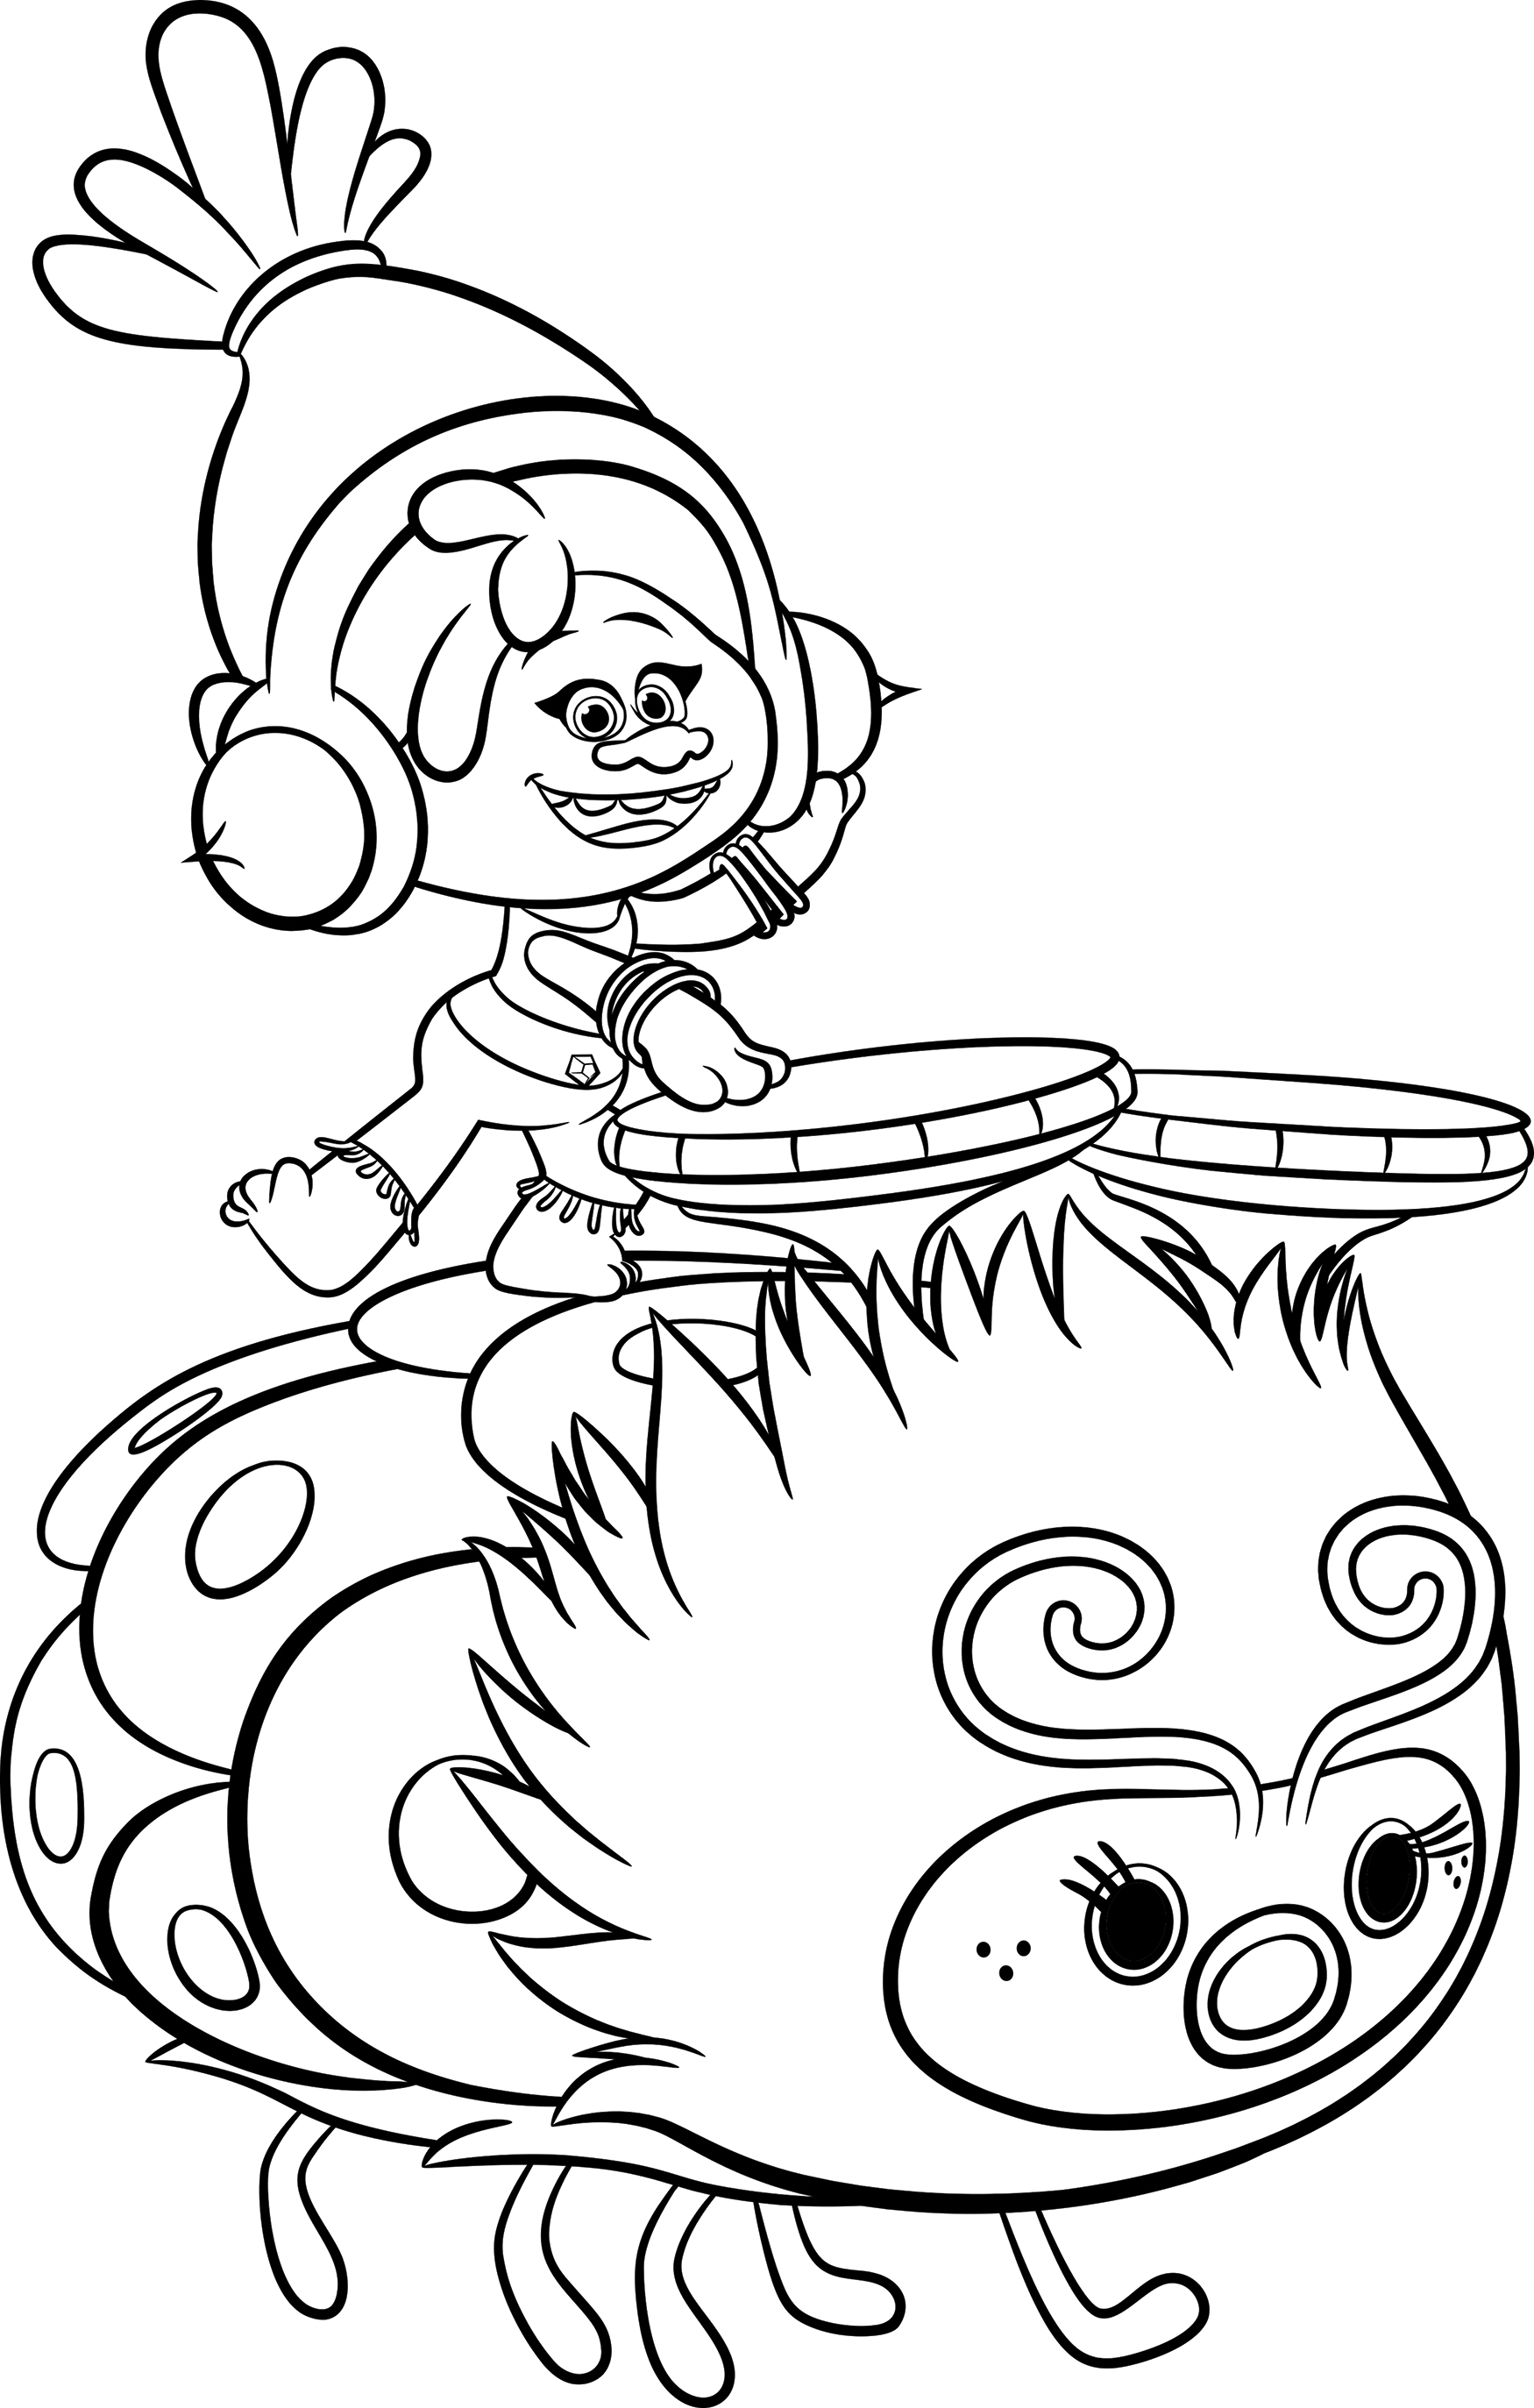 adventure time coloring pages - trolls digital hd free activity sheets